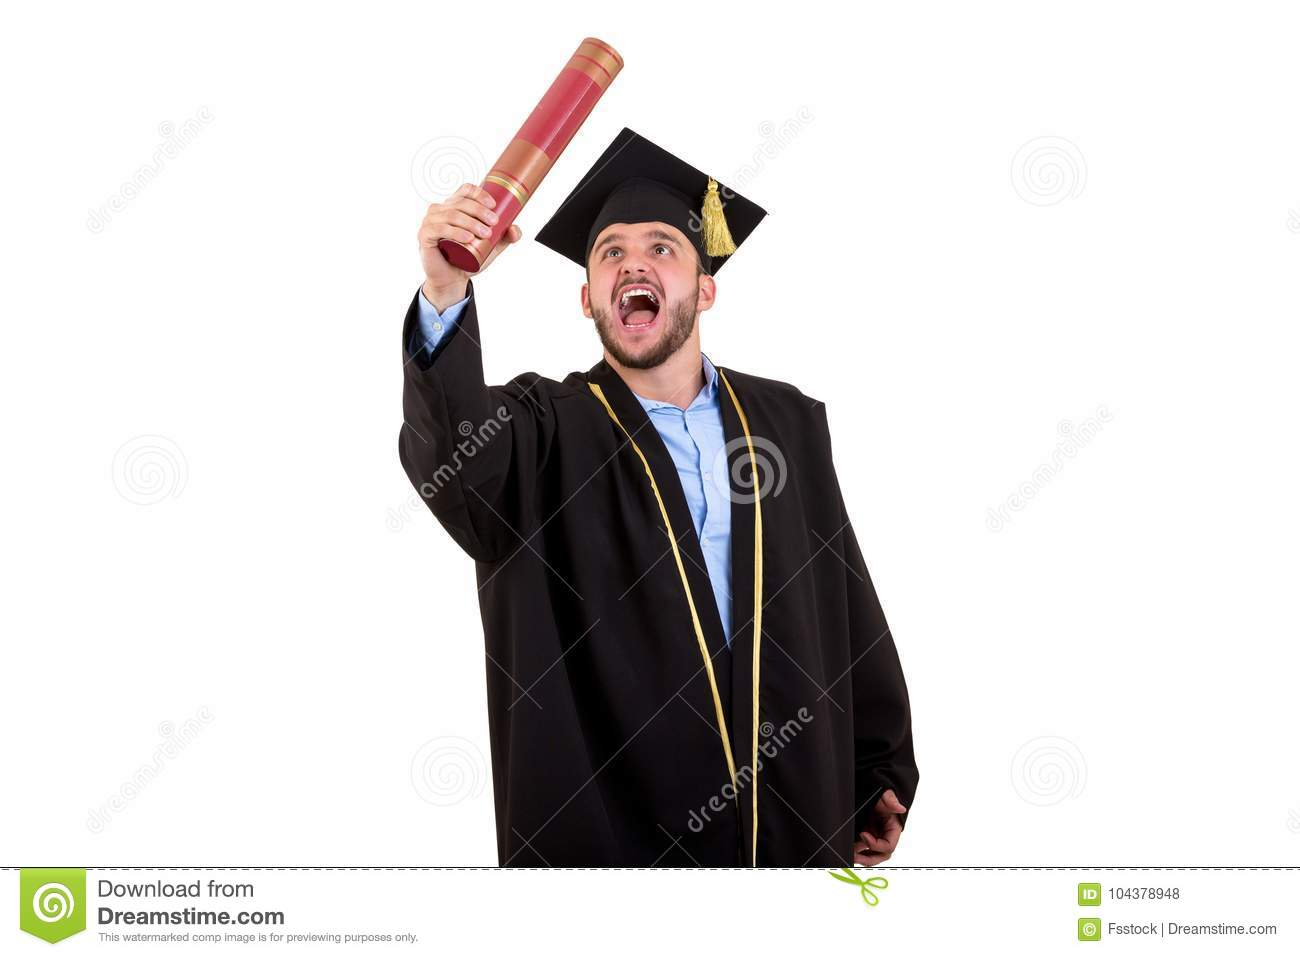 Male Student In Graduation Gown Gesturing With Hands Isolated On ...